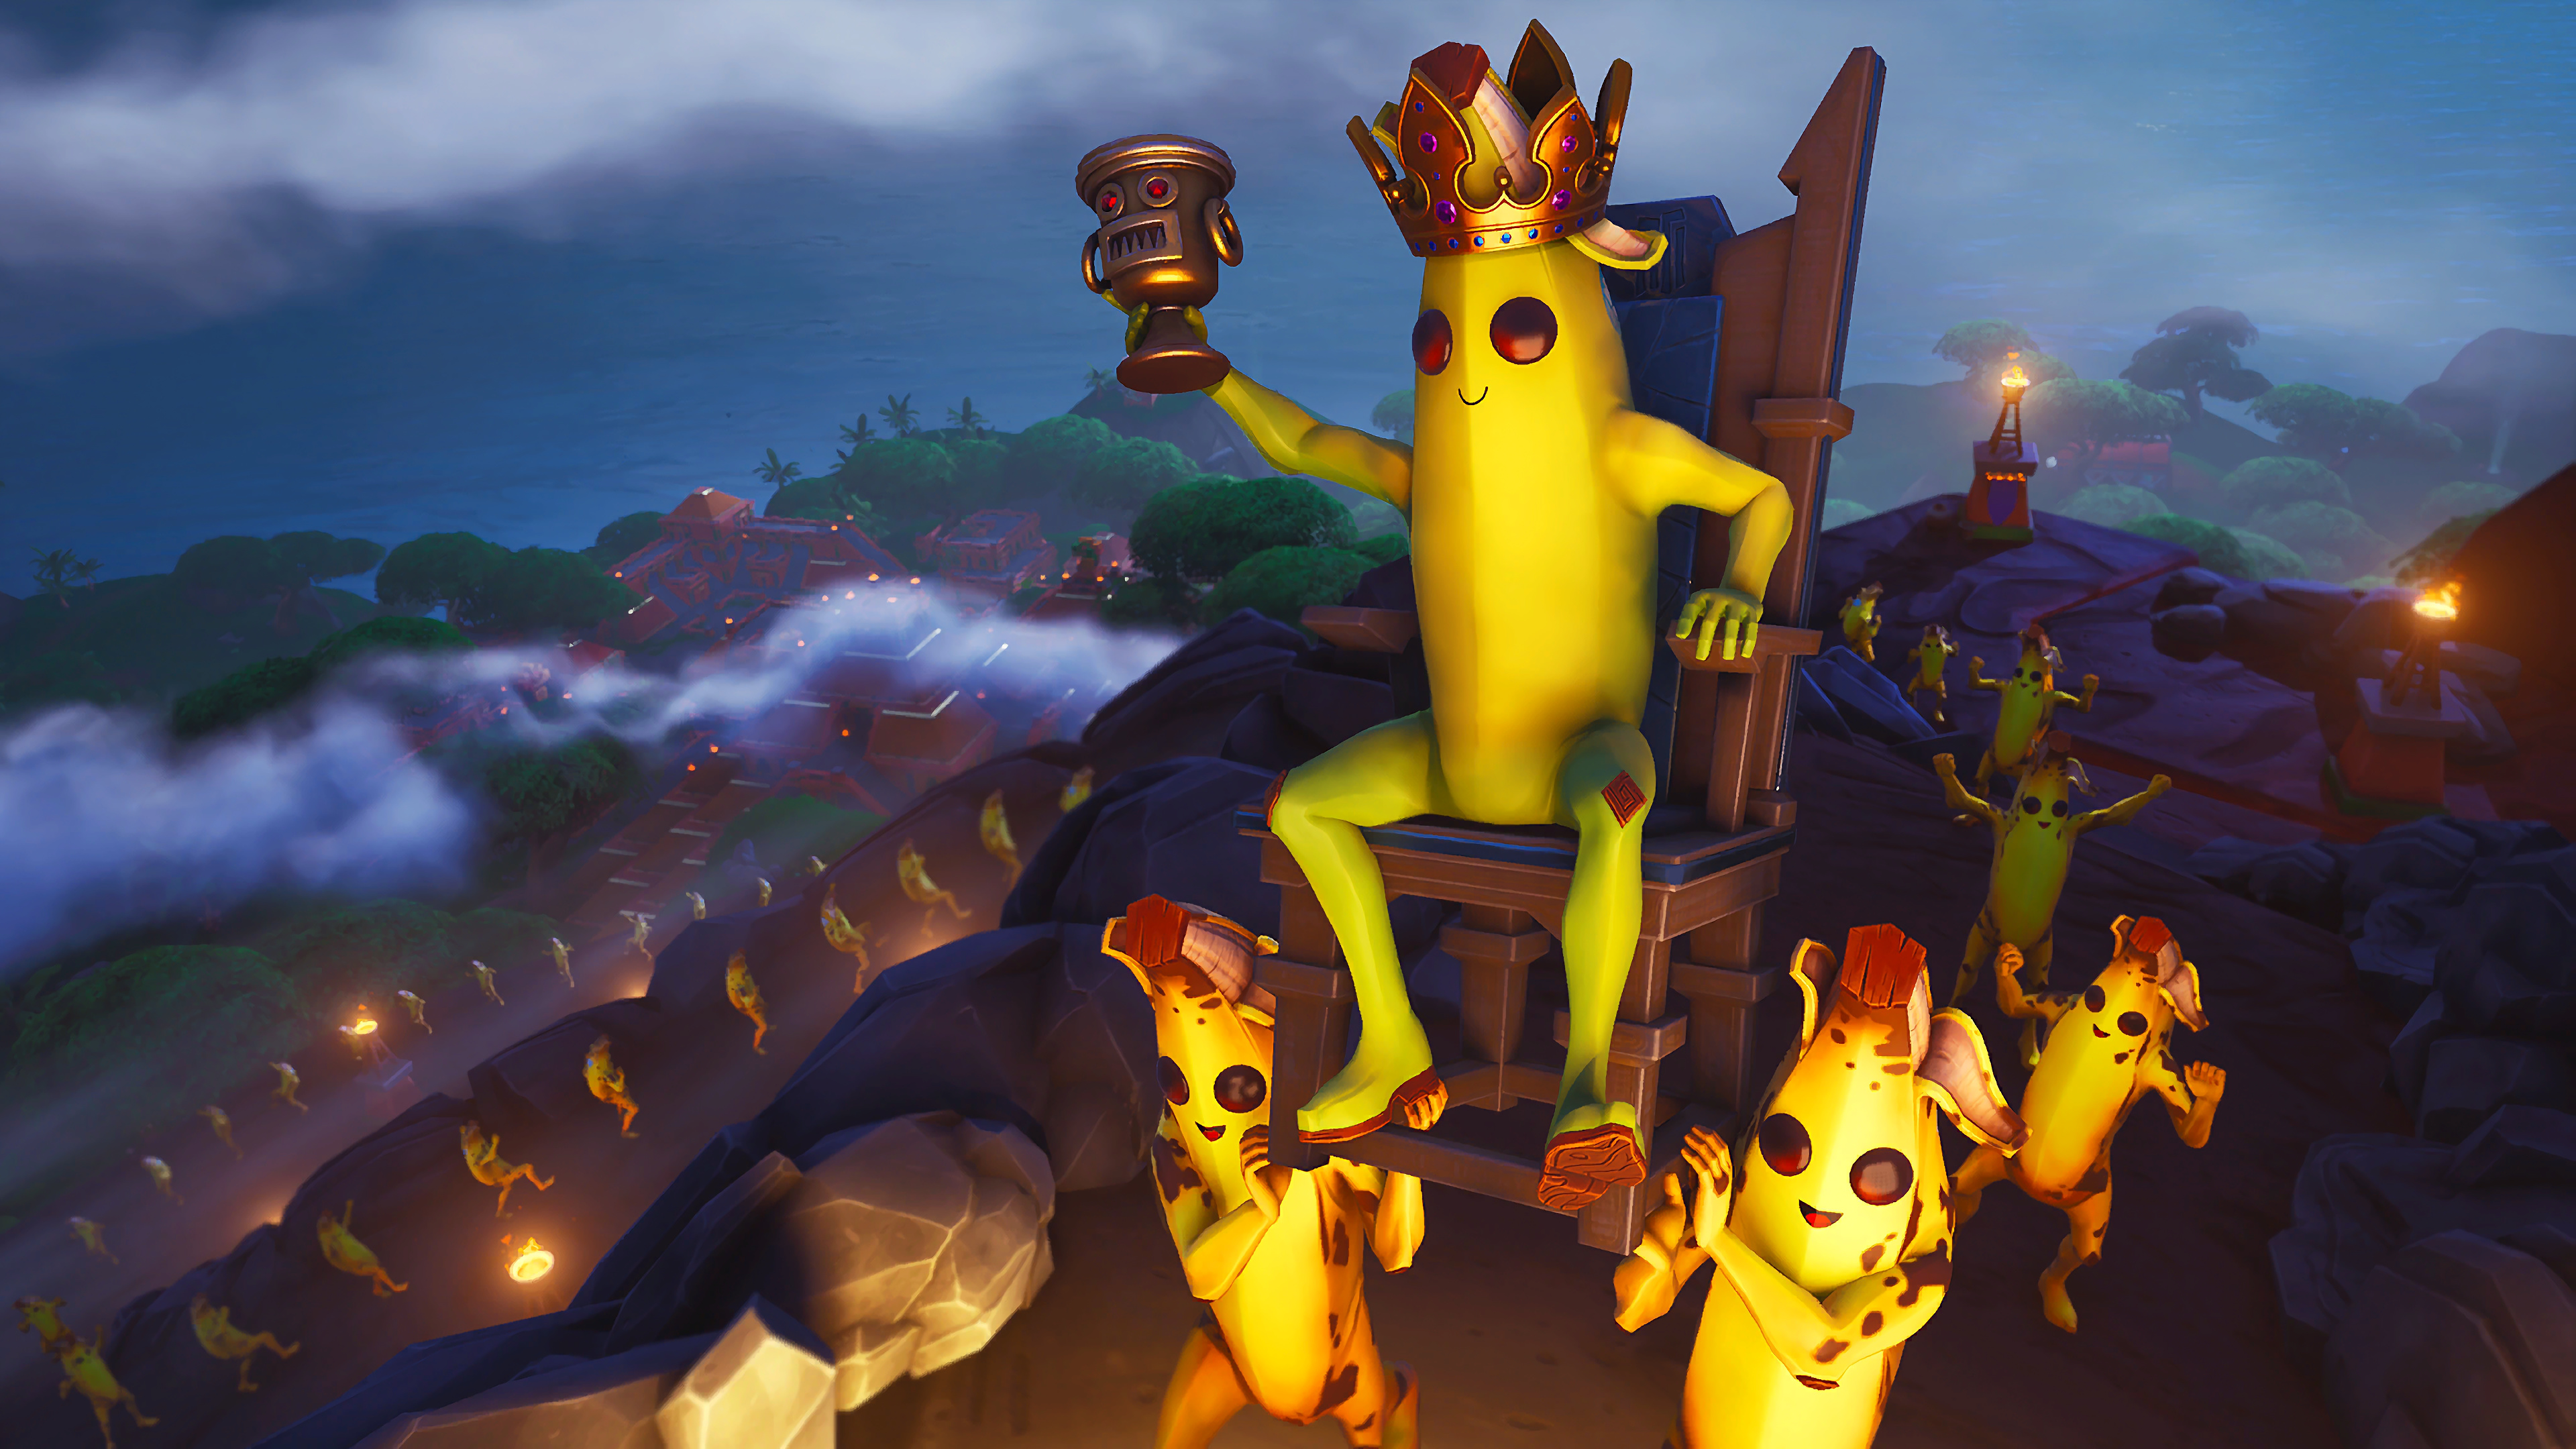 Fortnite Battle Royale Peely The Banana King 4k Wallpaper 135